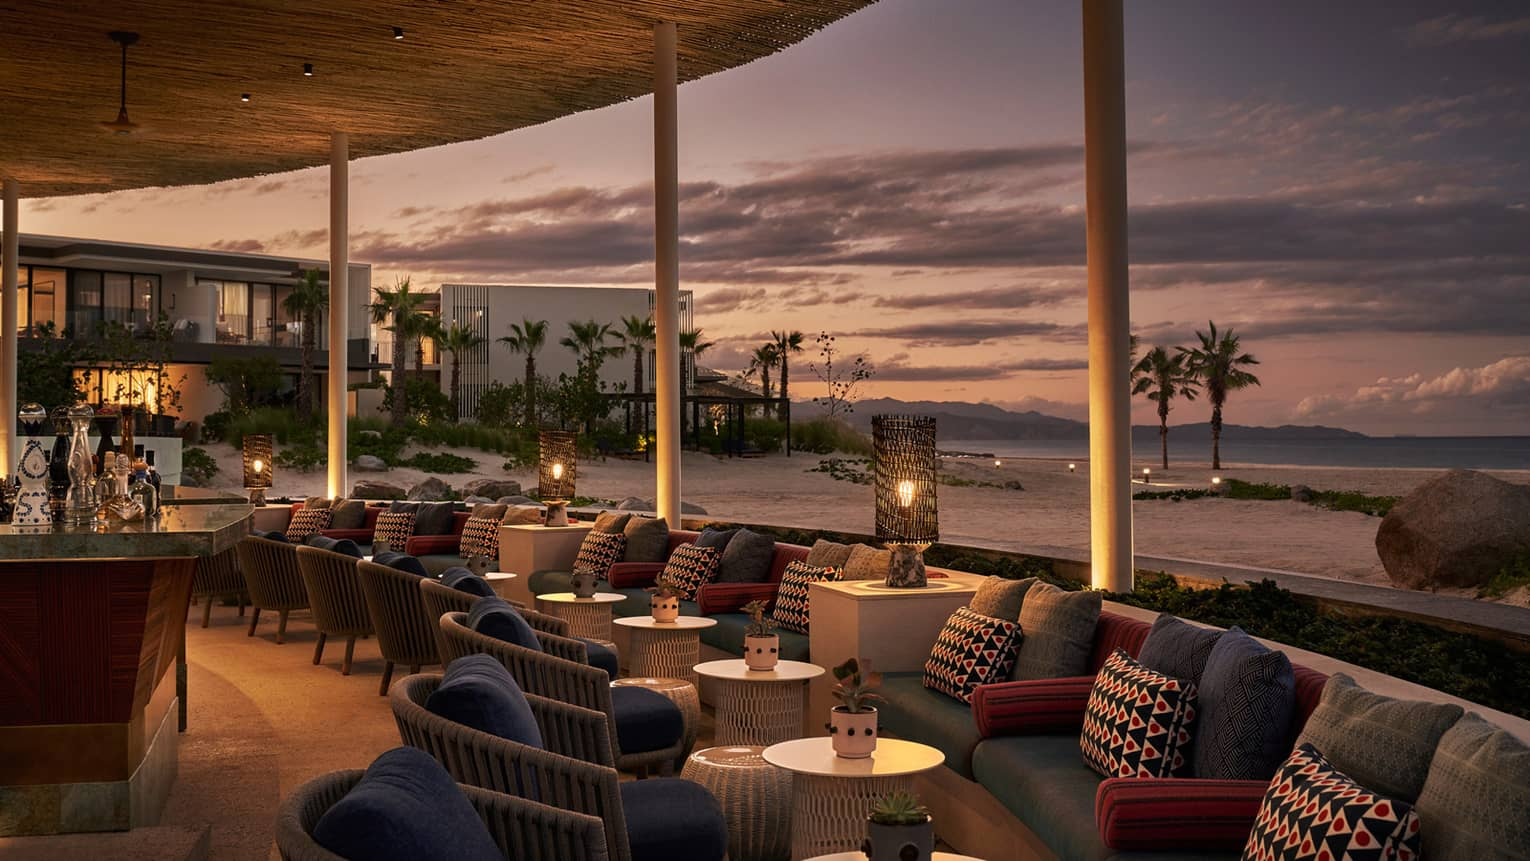 Dimly lit Casa de Brasa lounge area overlooking beach with palm trees at dusk